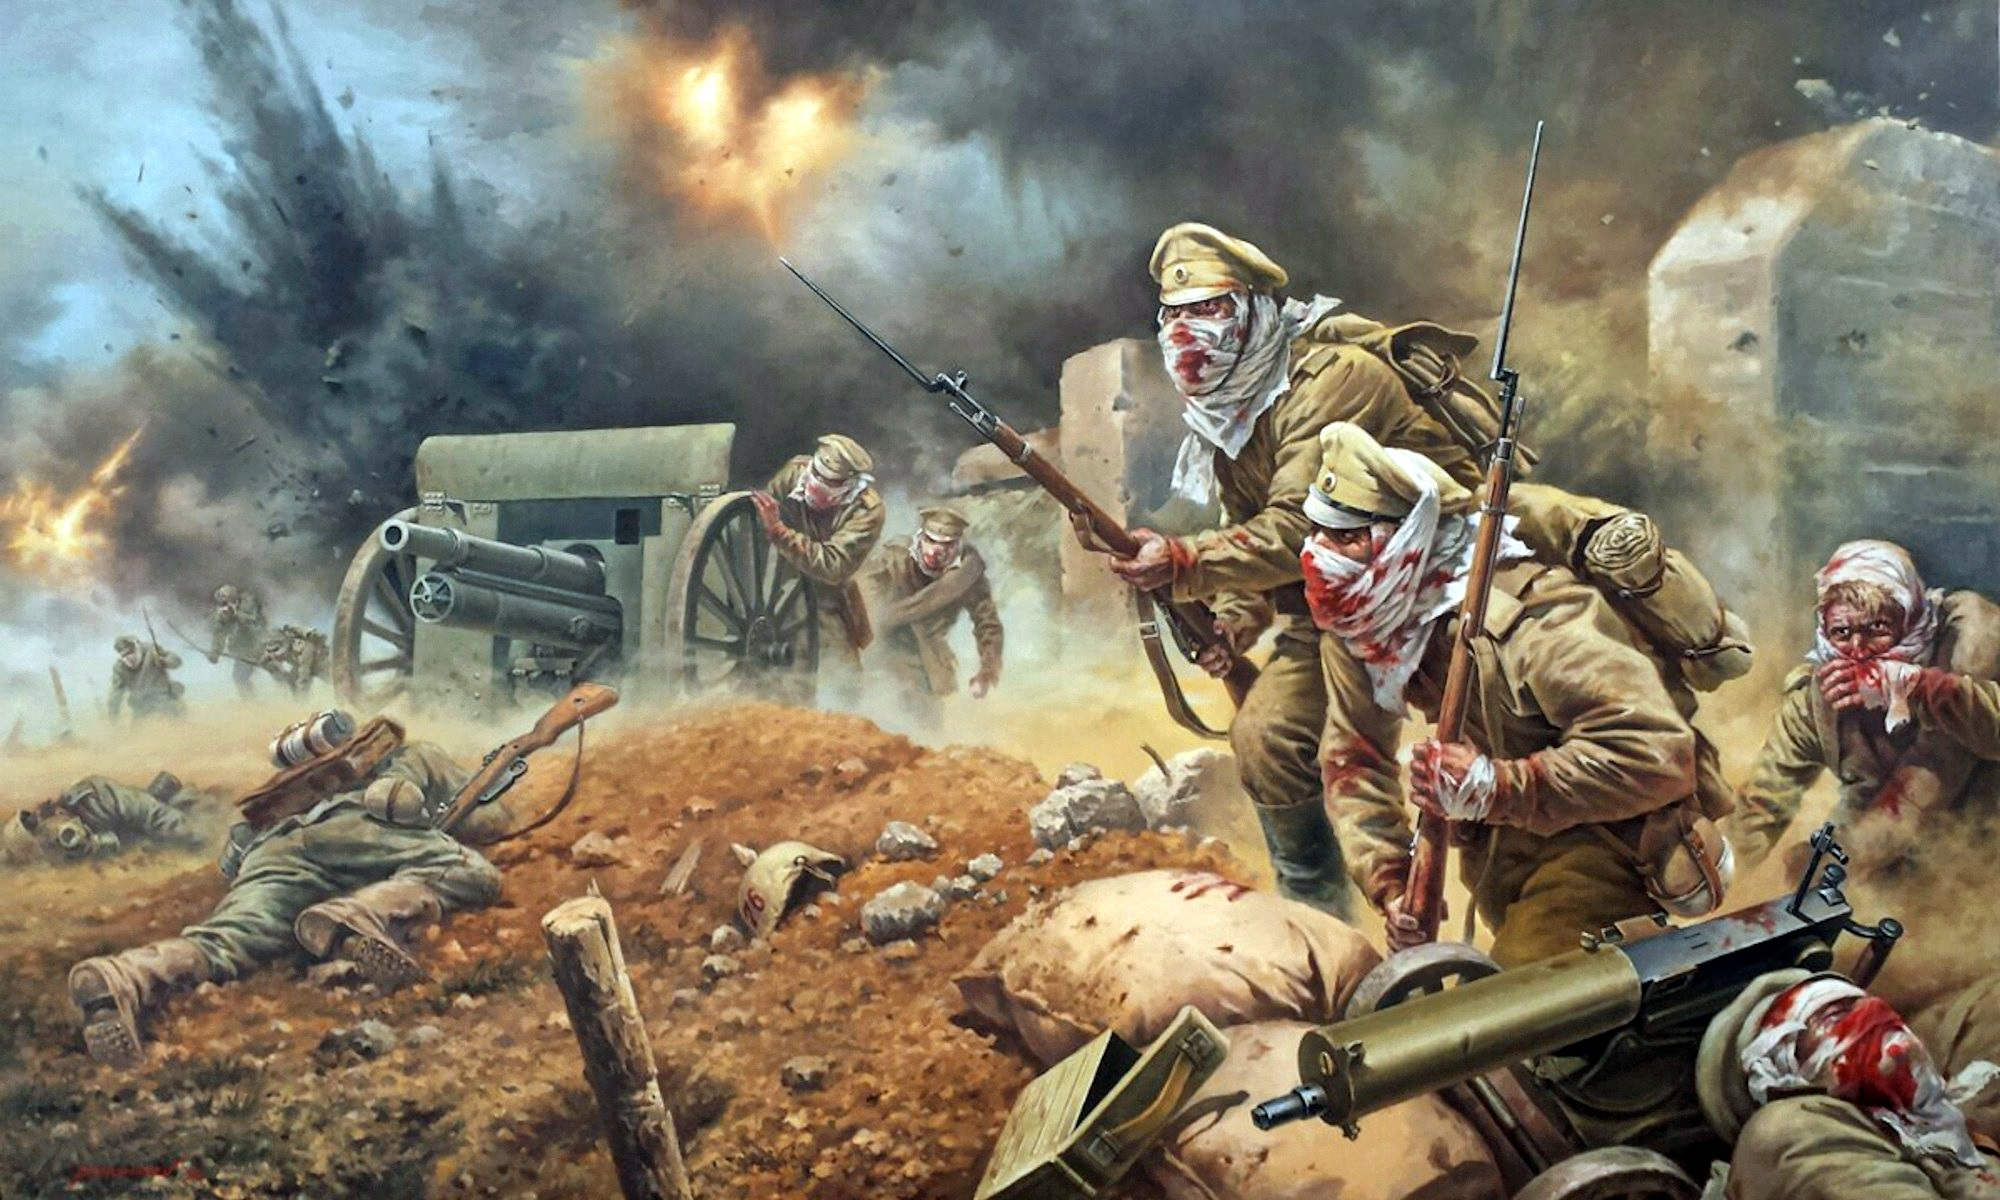 00 Yevgeni Ponomaryov. Dedicated to the Defenders of Osovets. The Attack of the Dead in 1915. 2015